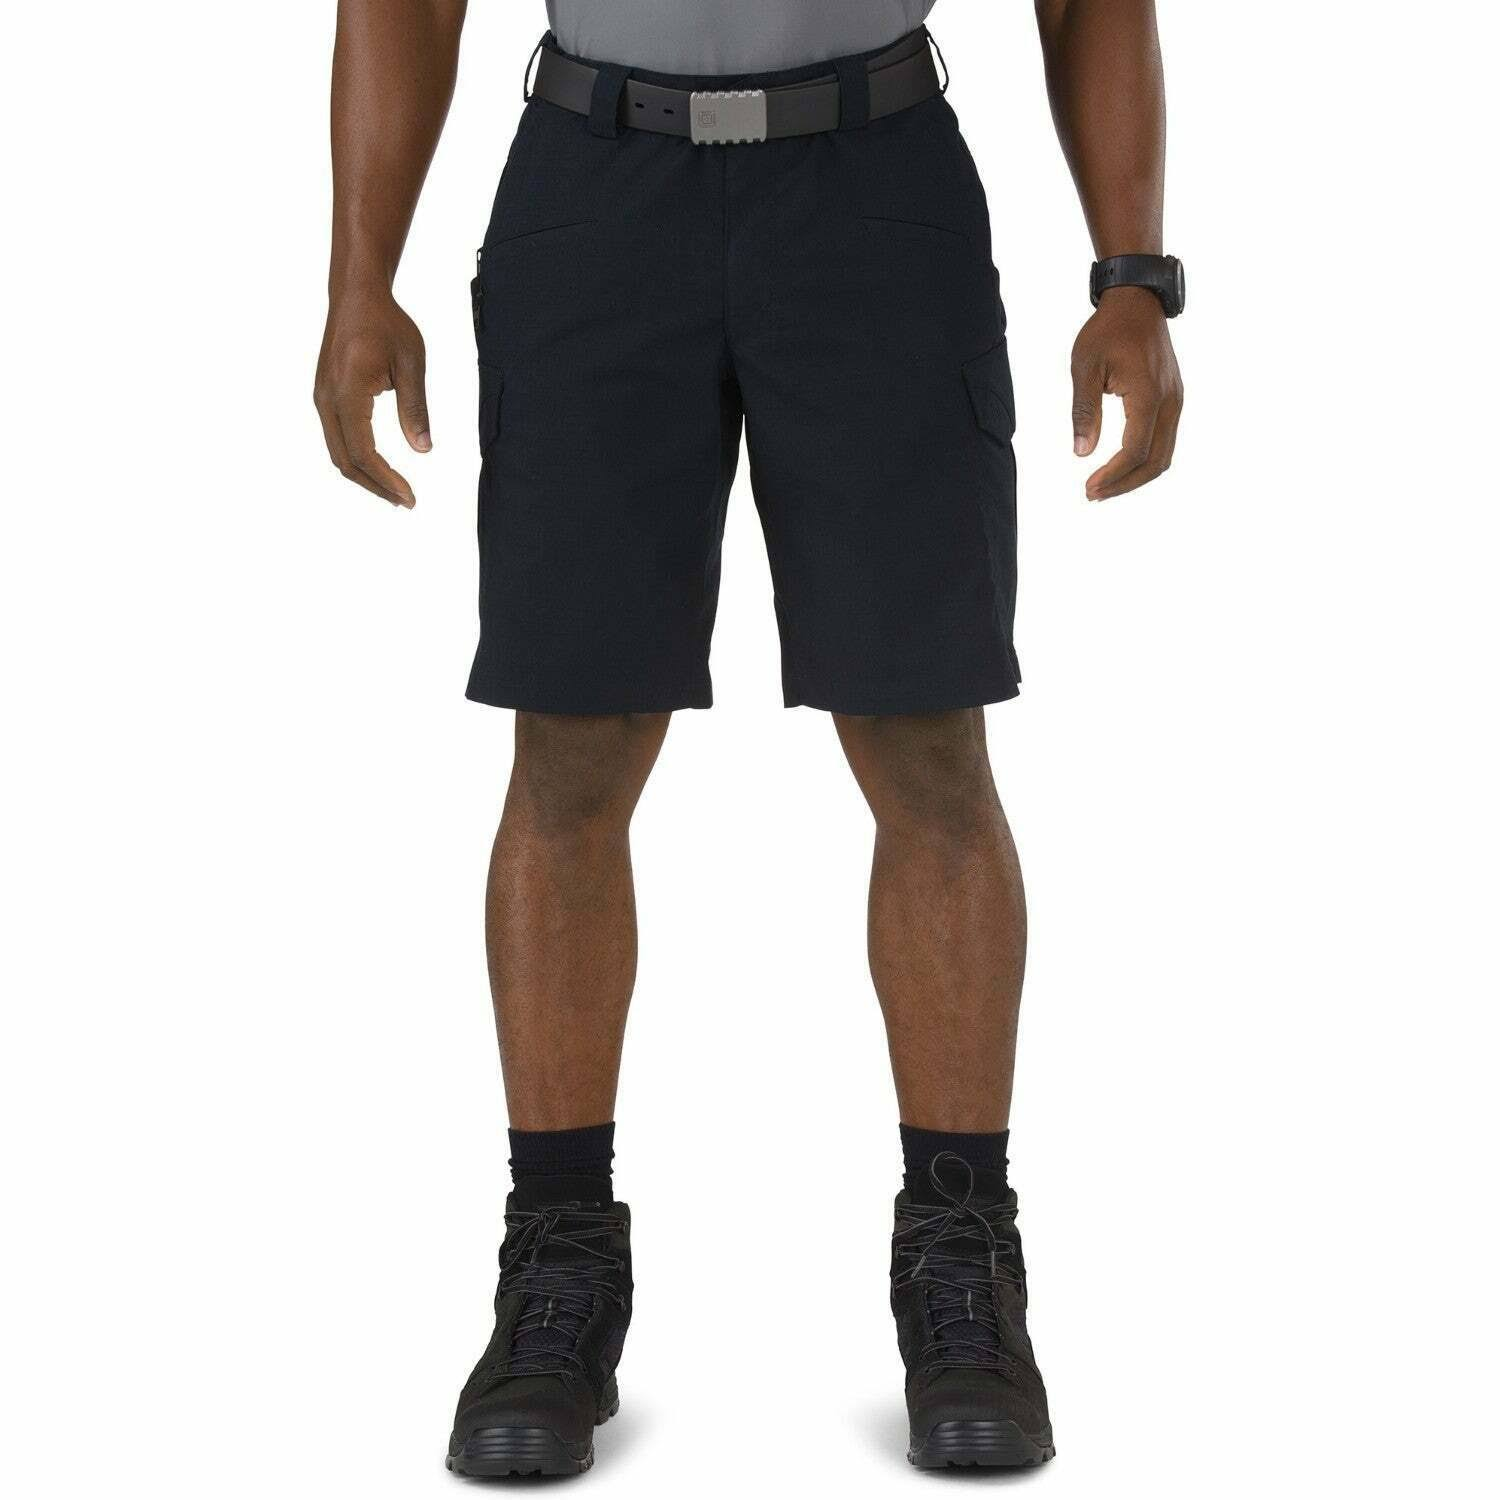 5.11 Men's Tactical Stryke Shorts - Dark Navy